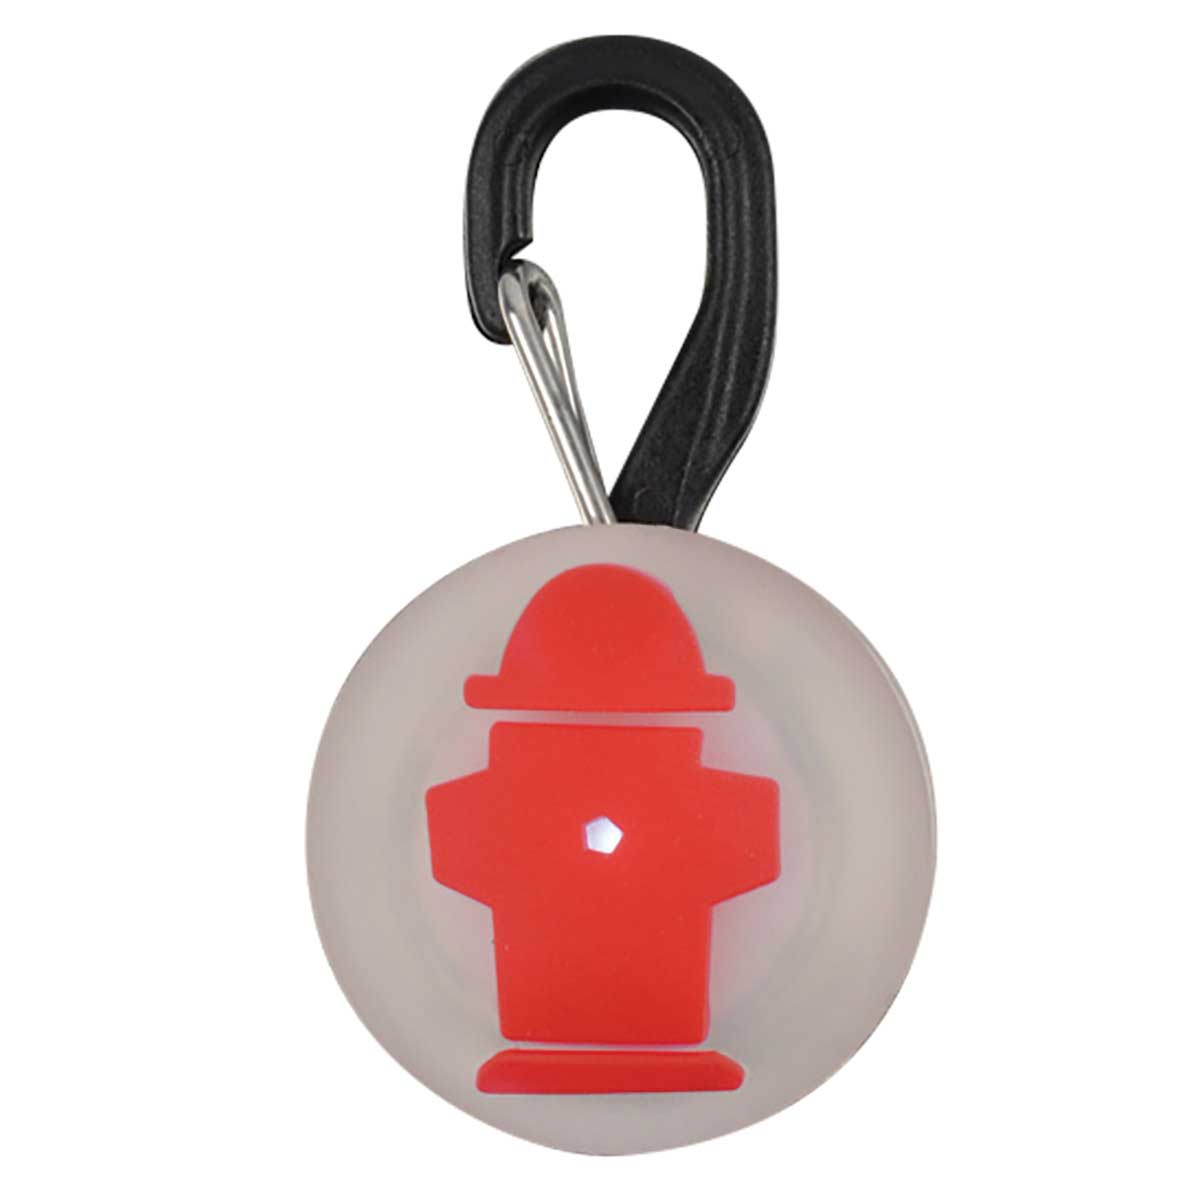 Nite Ize Petlit LED Collar Light Red Hydrant for Dogs